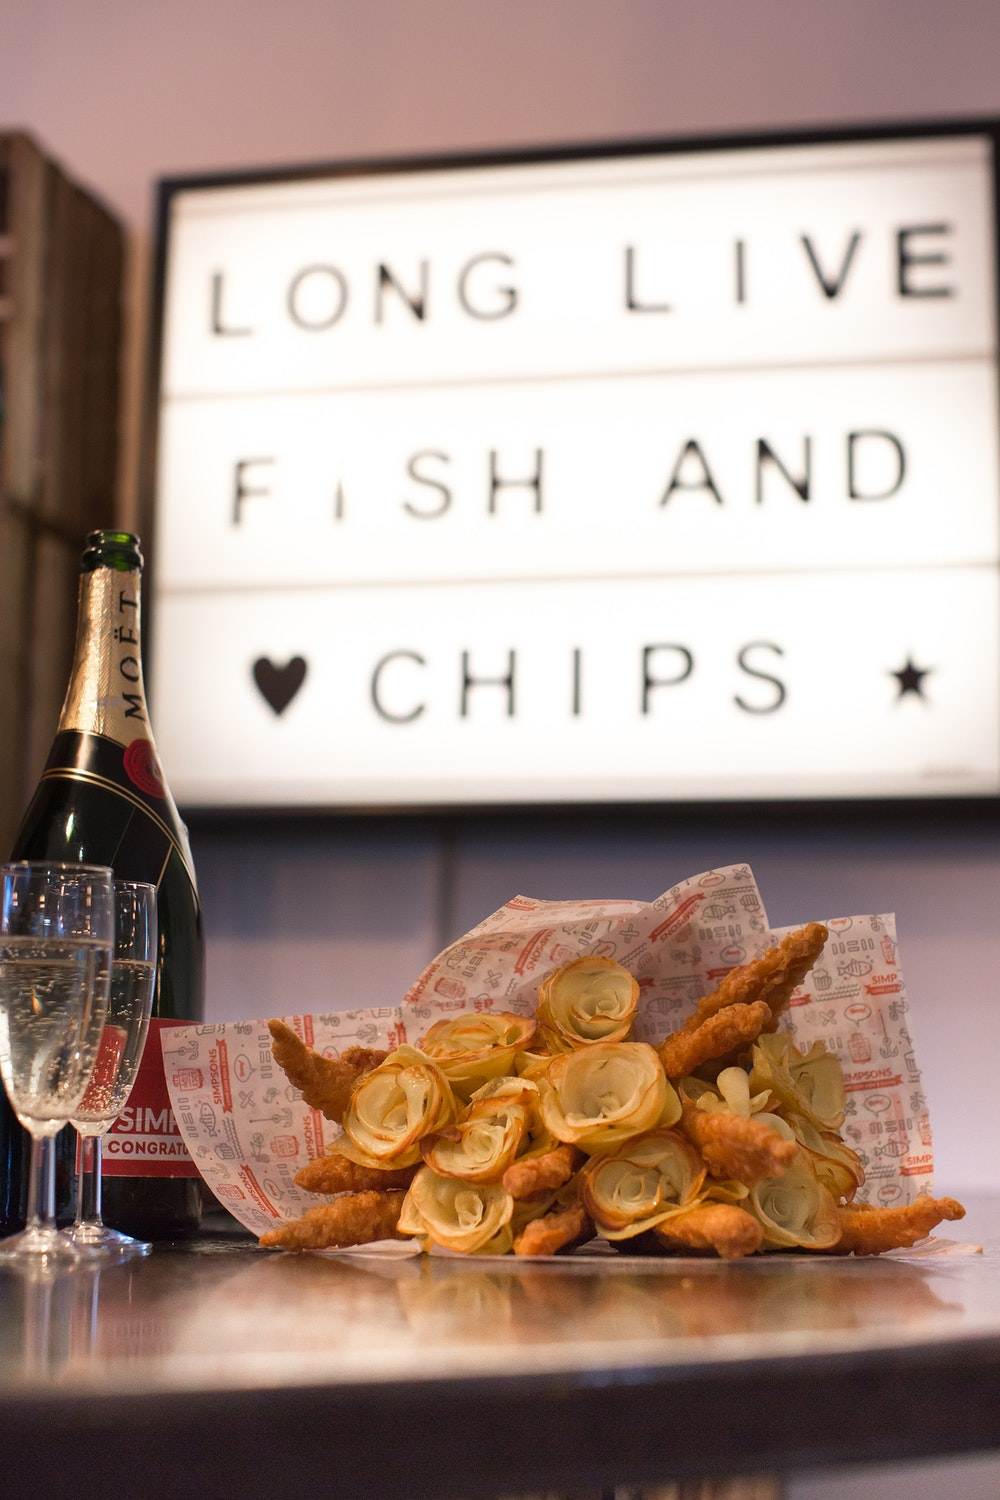 fish and chip bouquet with champagne bottle and glasses